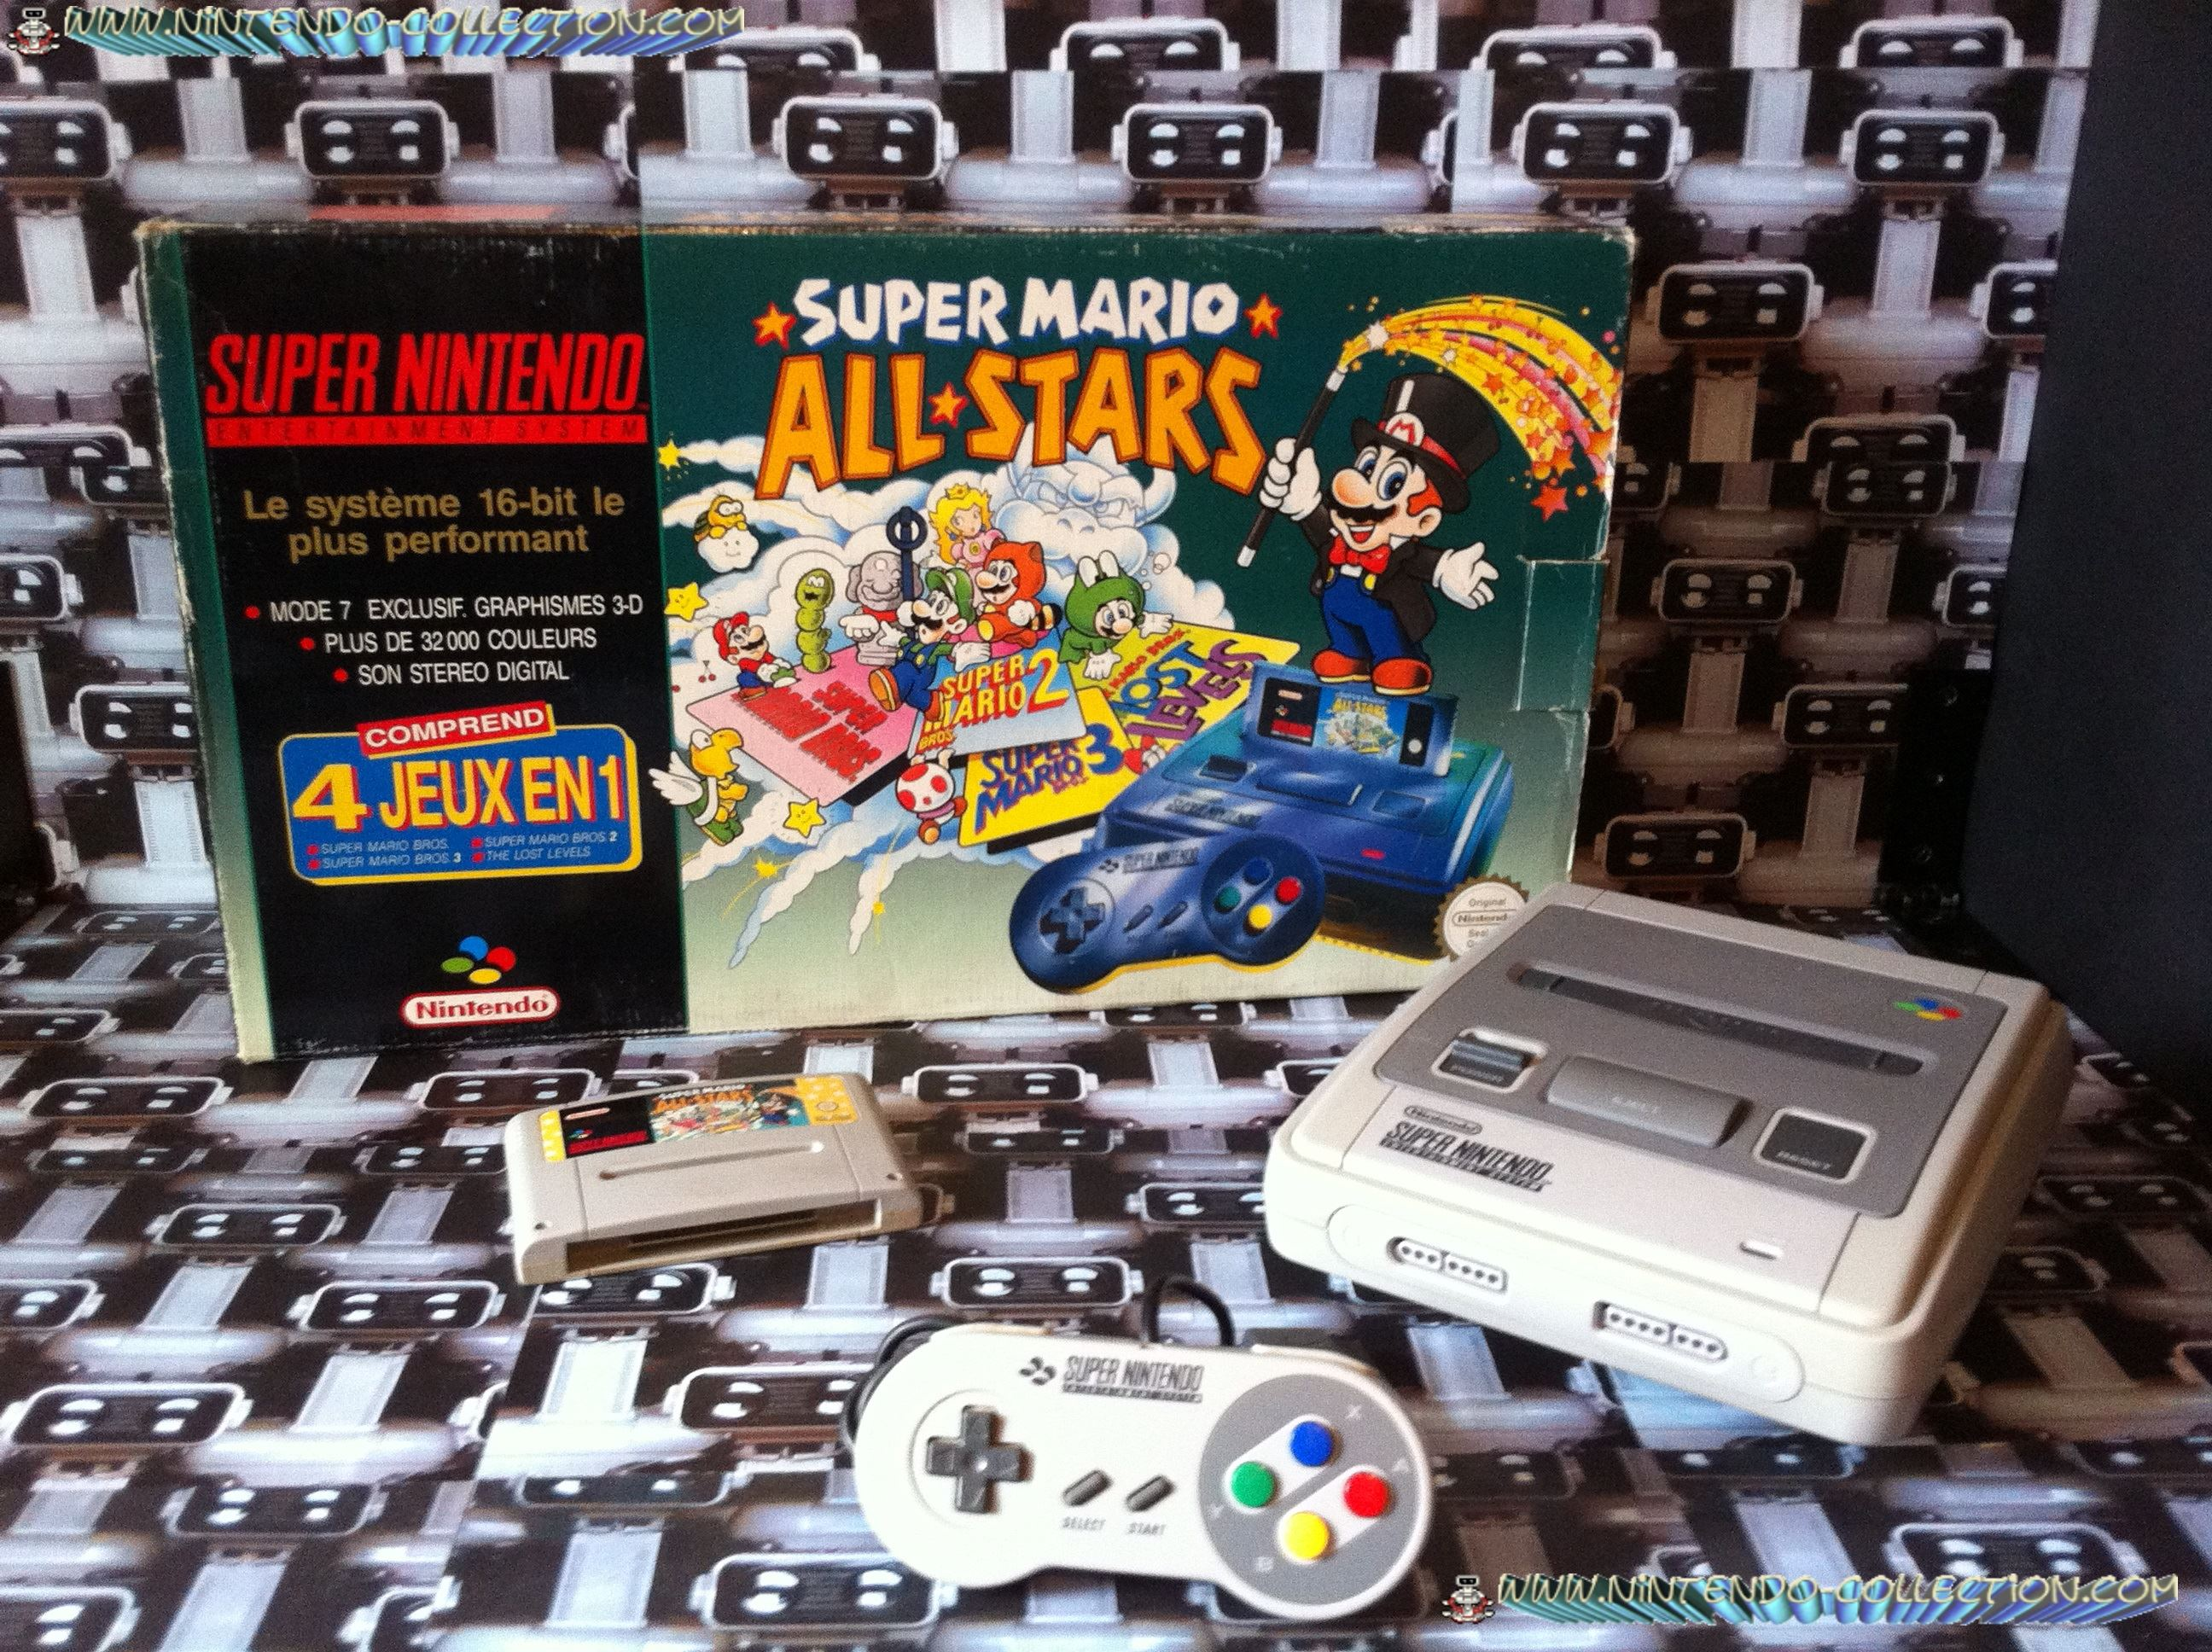 www.nintendo-collection.com - Super Nintendo Super Famicom Super Nes Pack Super Mario All Stars Vert